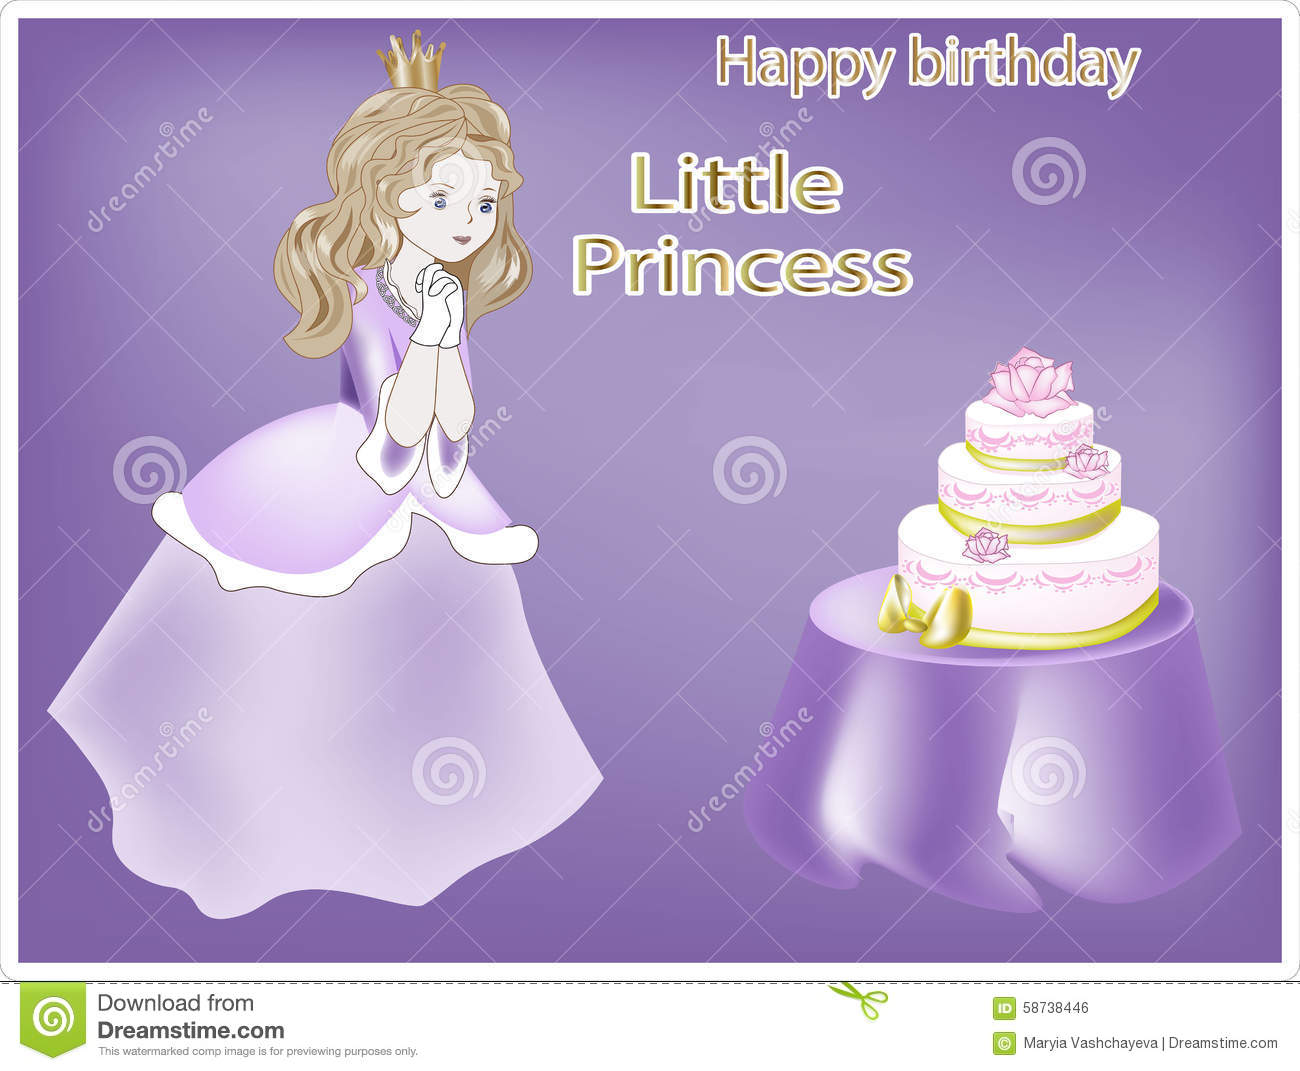 happy birthday my little princess ; happy-birthday-little-princess-lovely-looks-pie-58738446